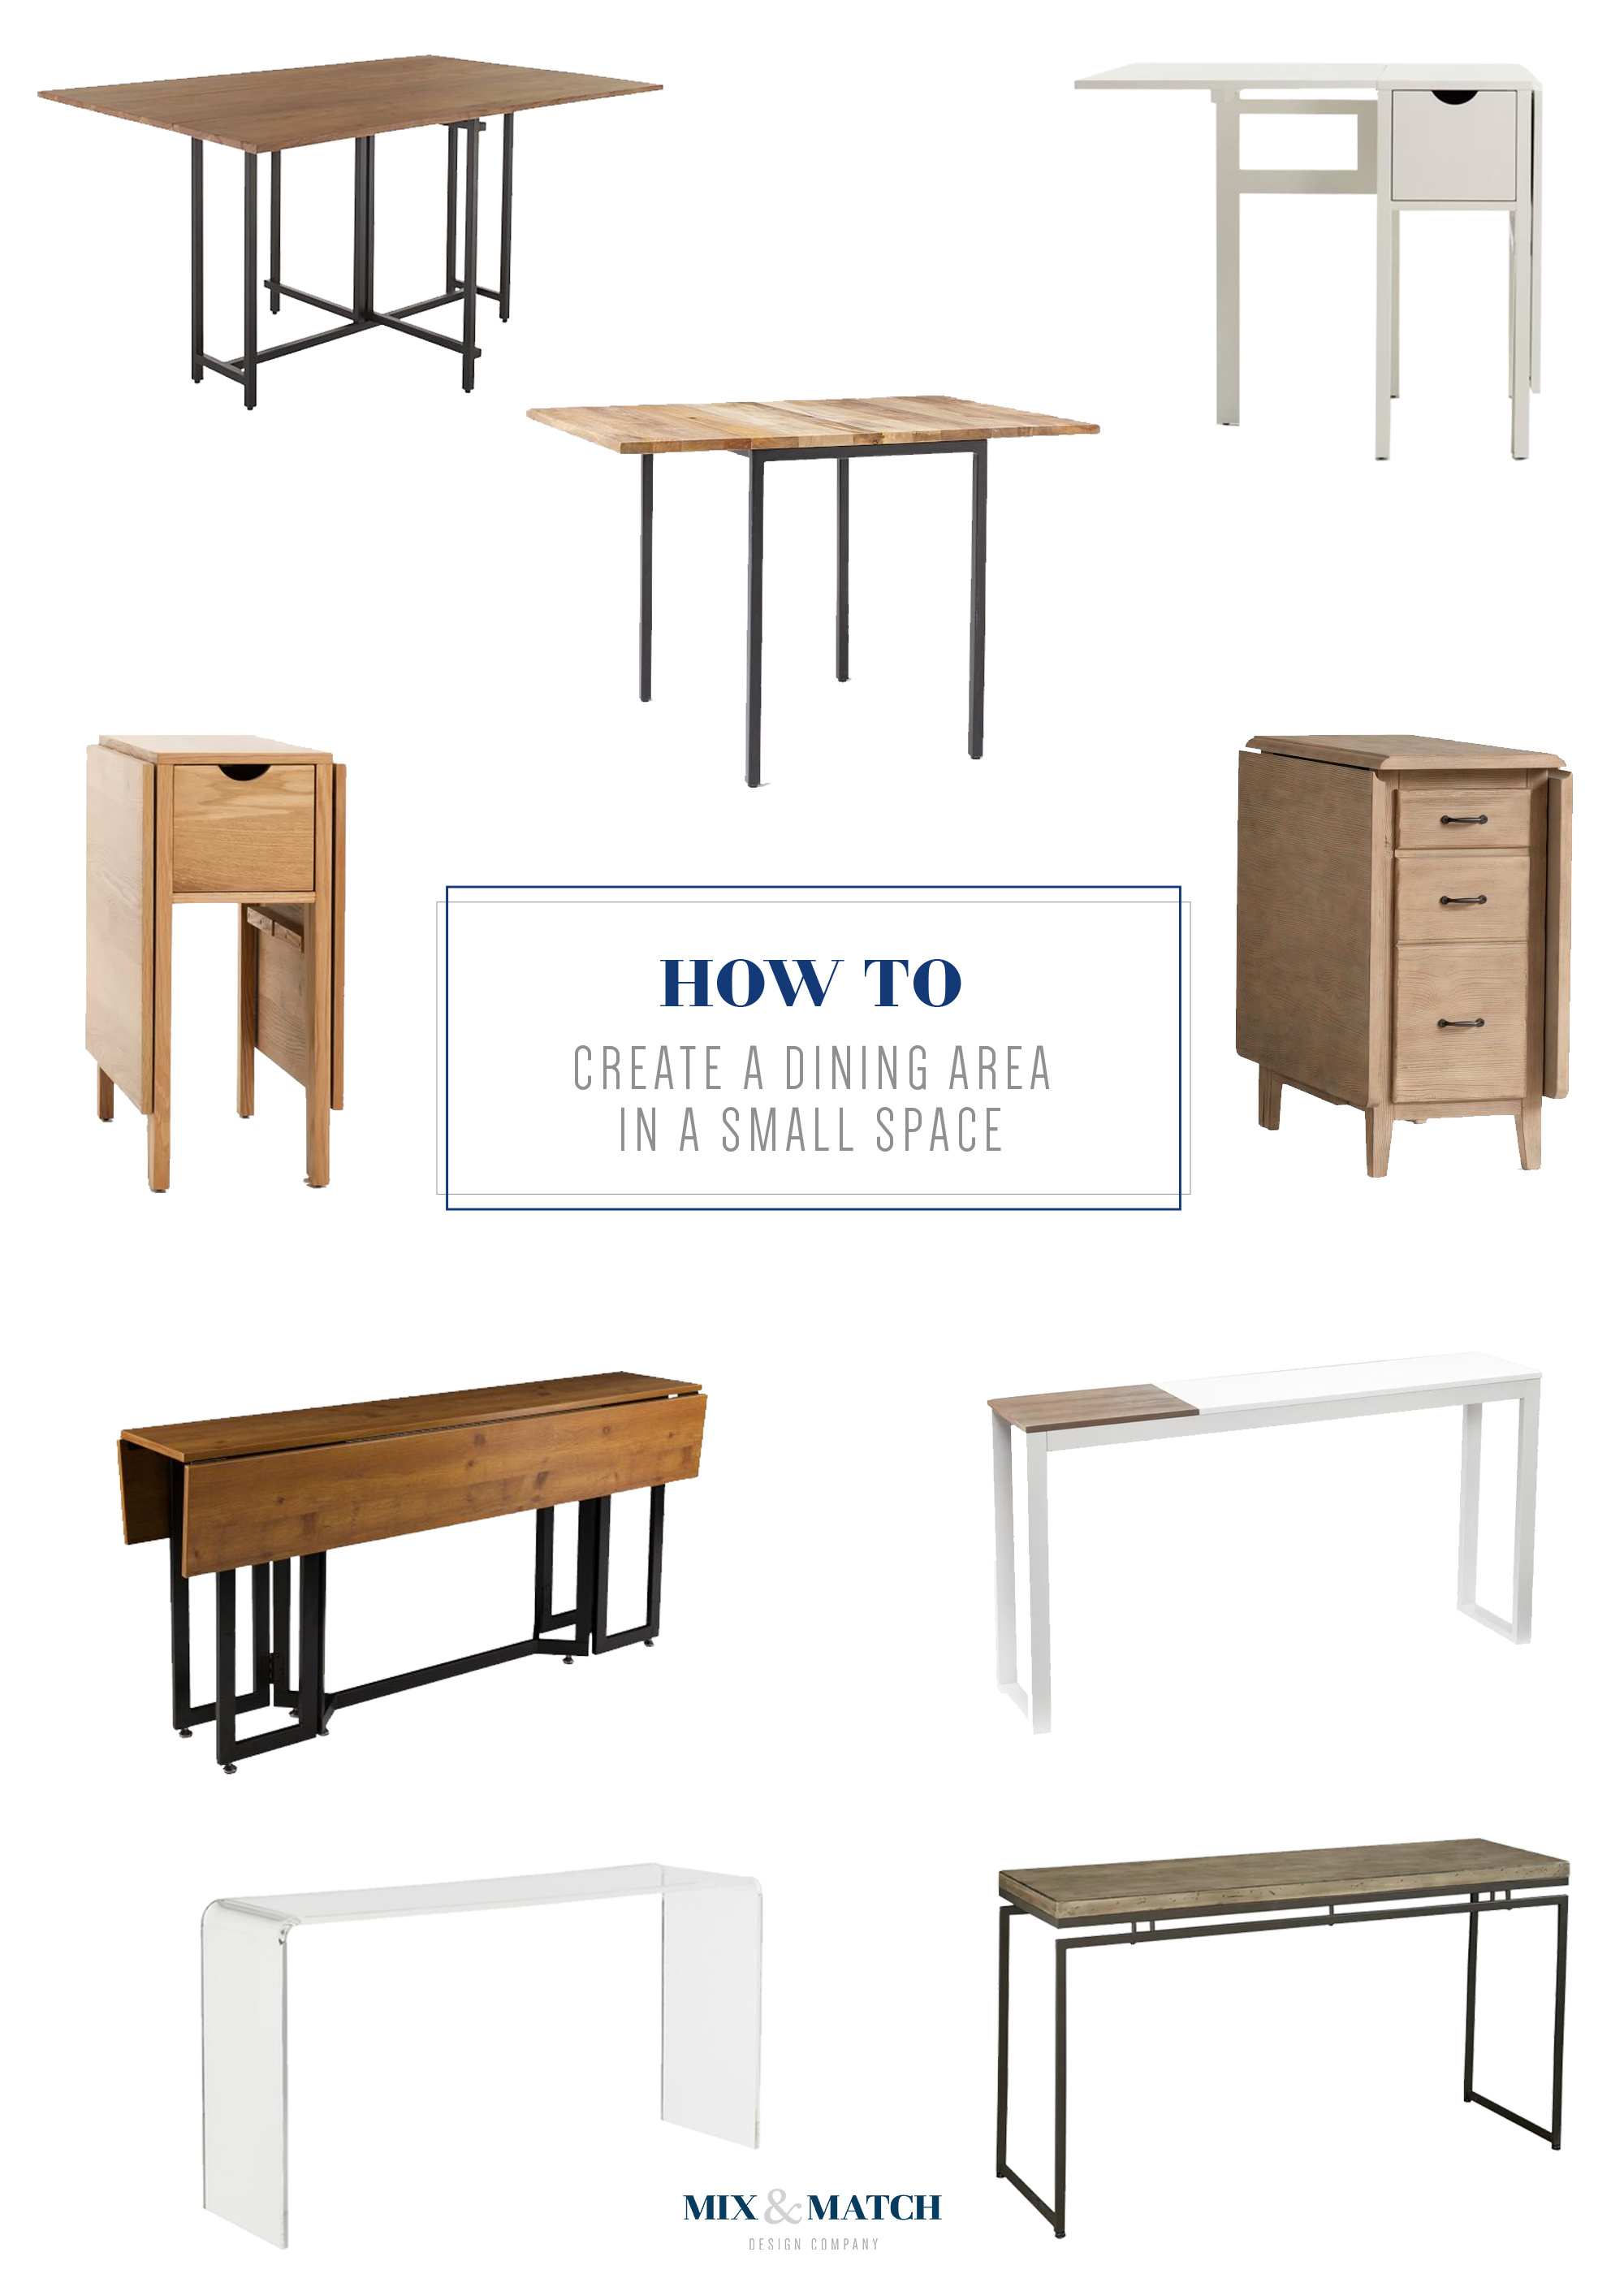 How to create a dining area in a small space. Using a gate leg table or a console table is a great way to be efficient with your space.